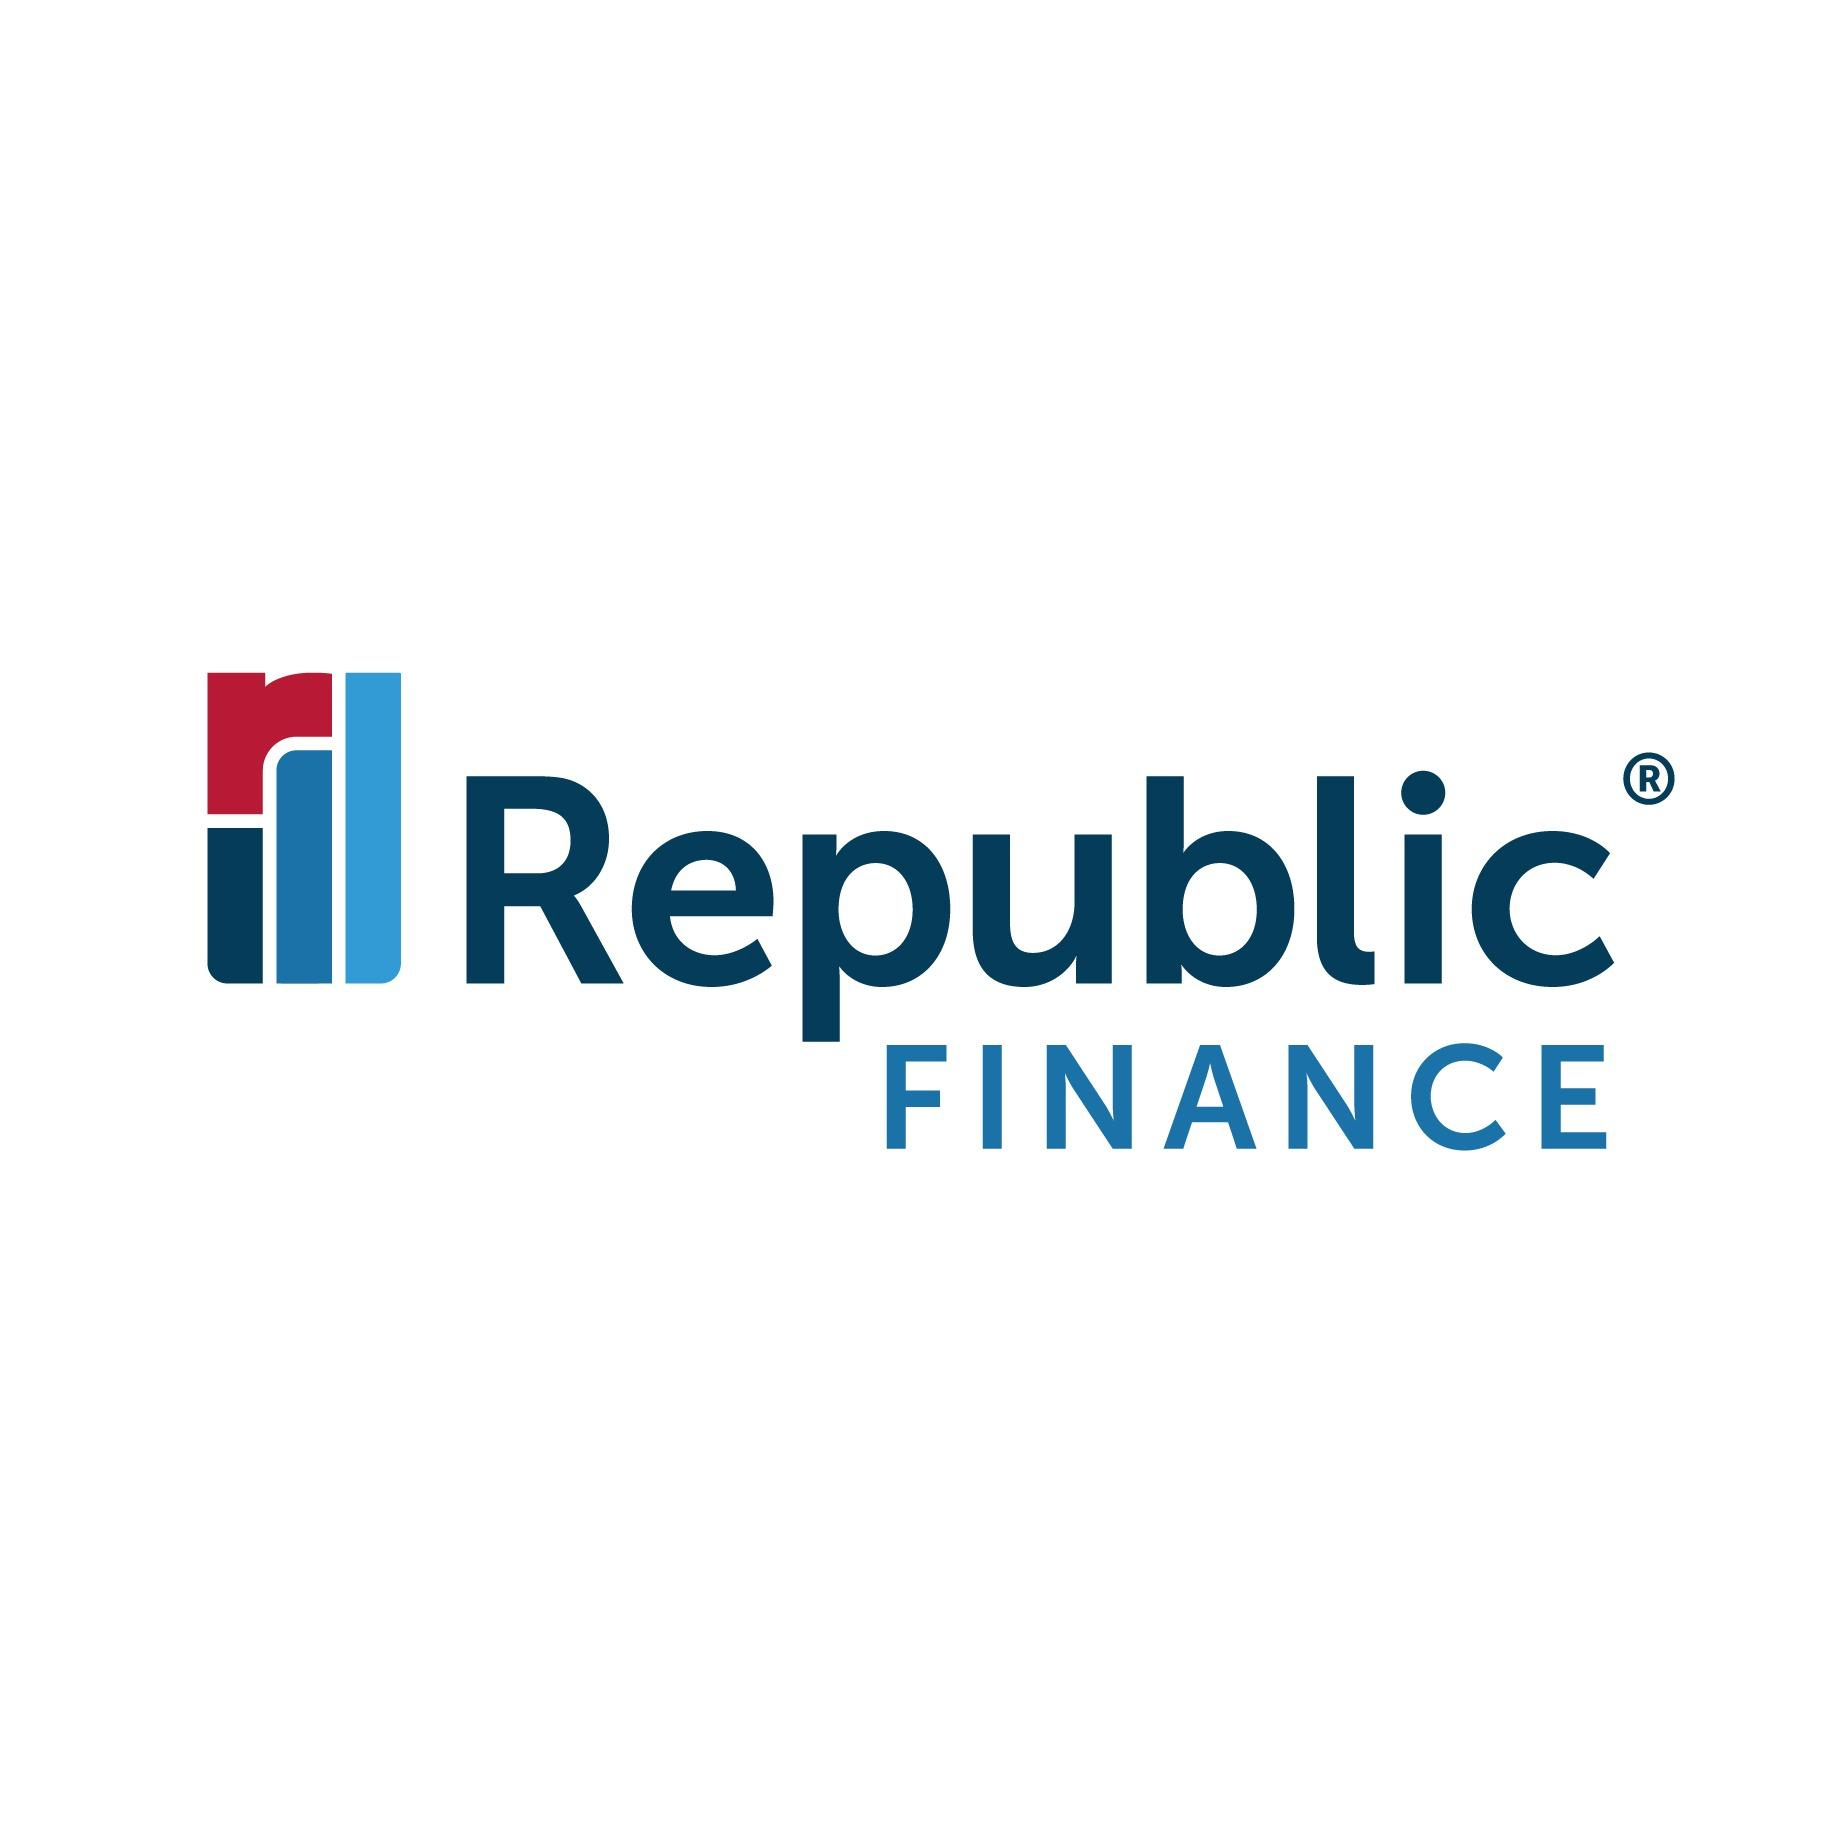 Republic Finance - Maryville, TN 37804 - (865)983-4004 | ShowMeLocal.com